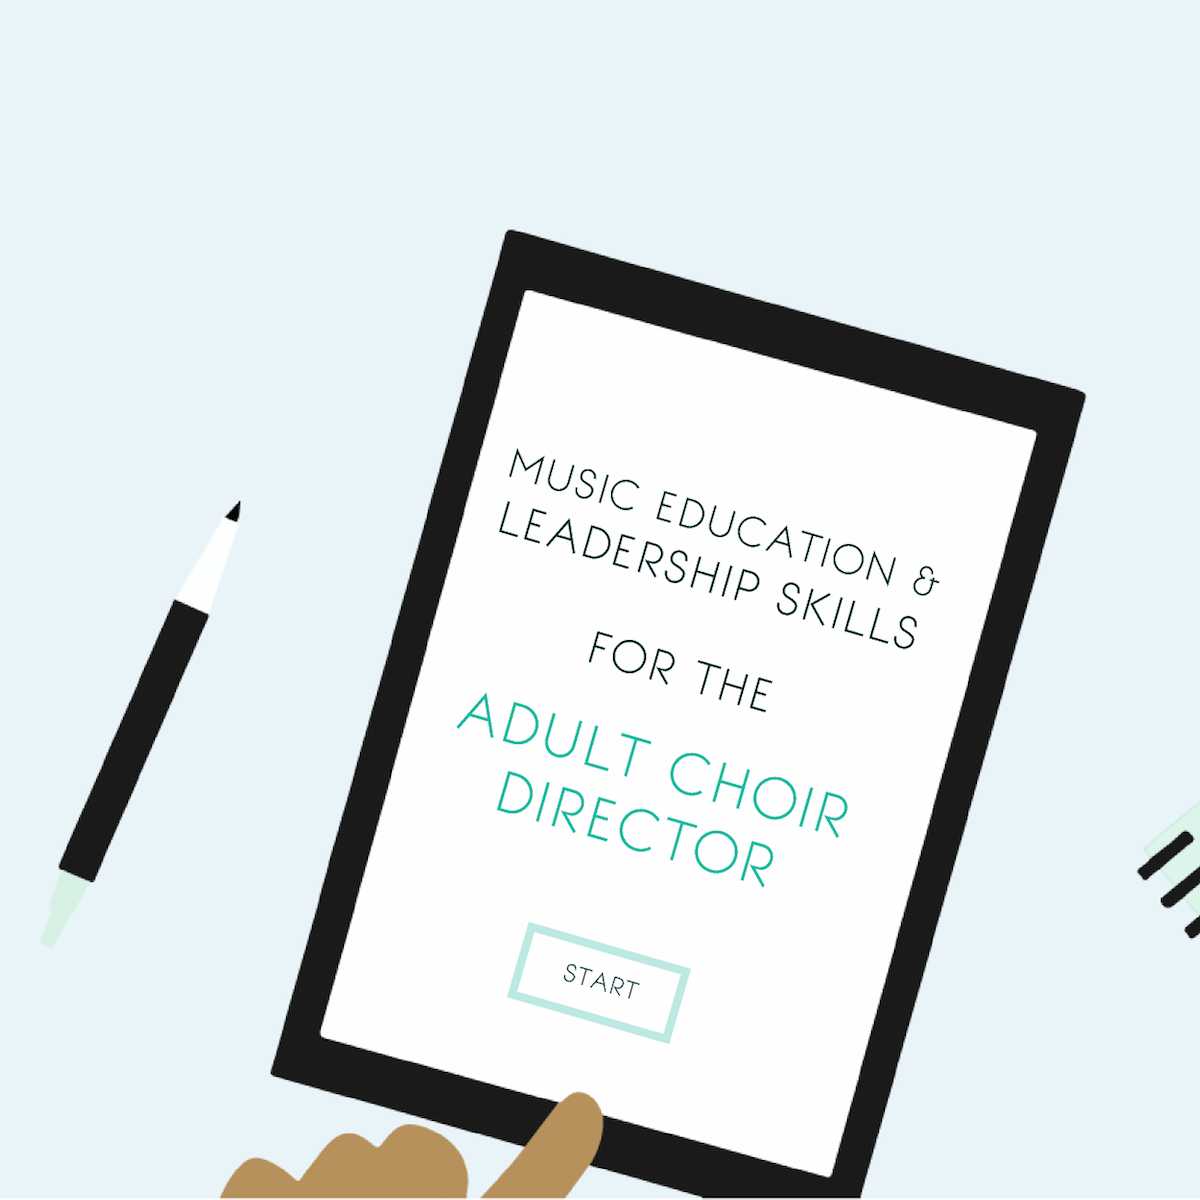 Music Education & Leadership Skills for the Adult Choir Director - an online course.png